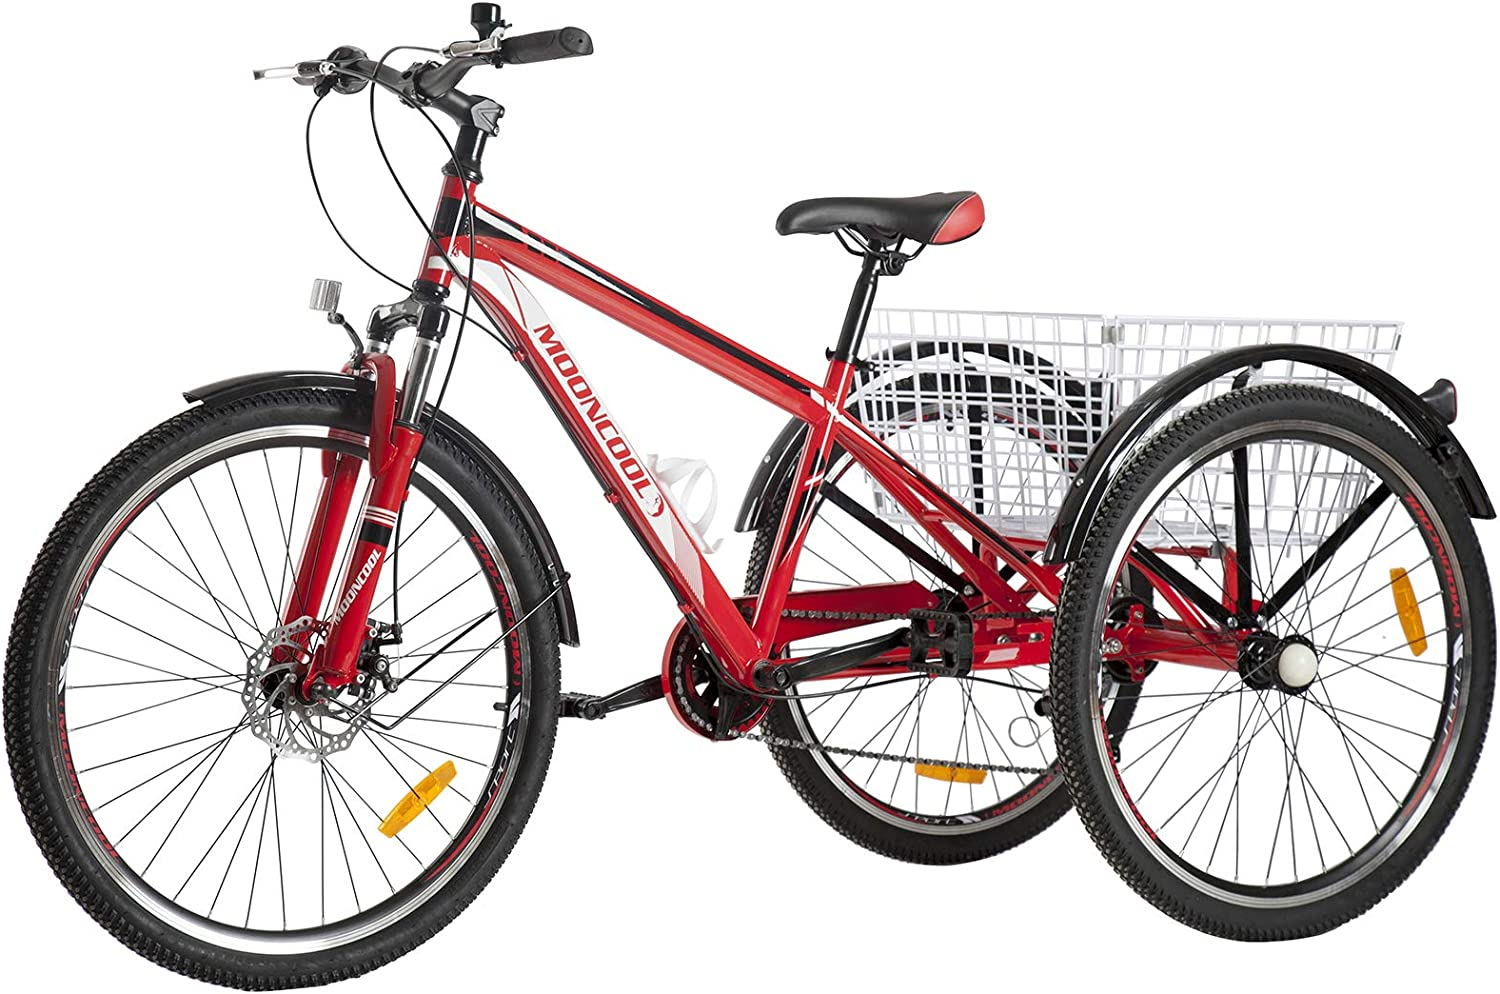 Naudacaa Adult Mountain Tricycle Challenge the lowest price of Japan Ranking TOP7 Three 7 Speed